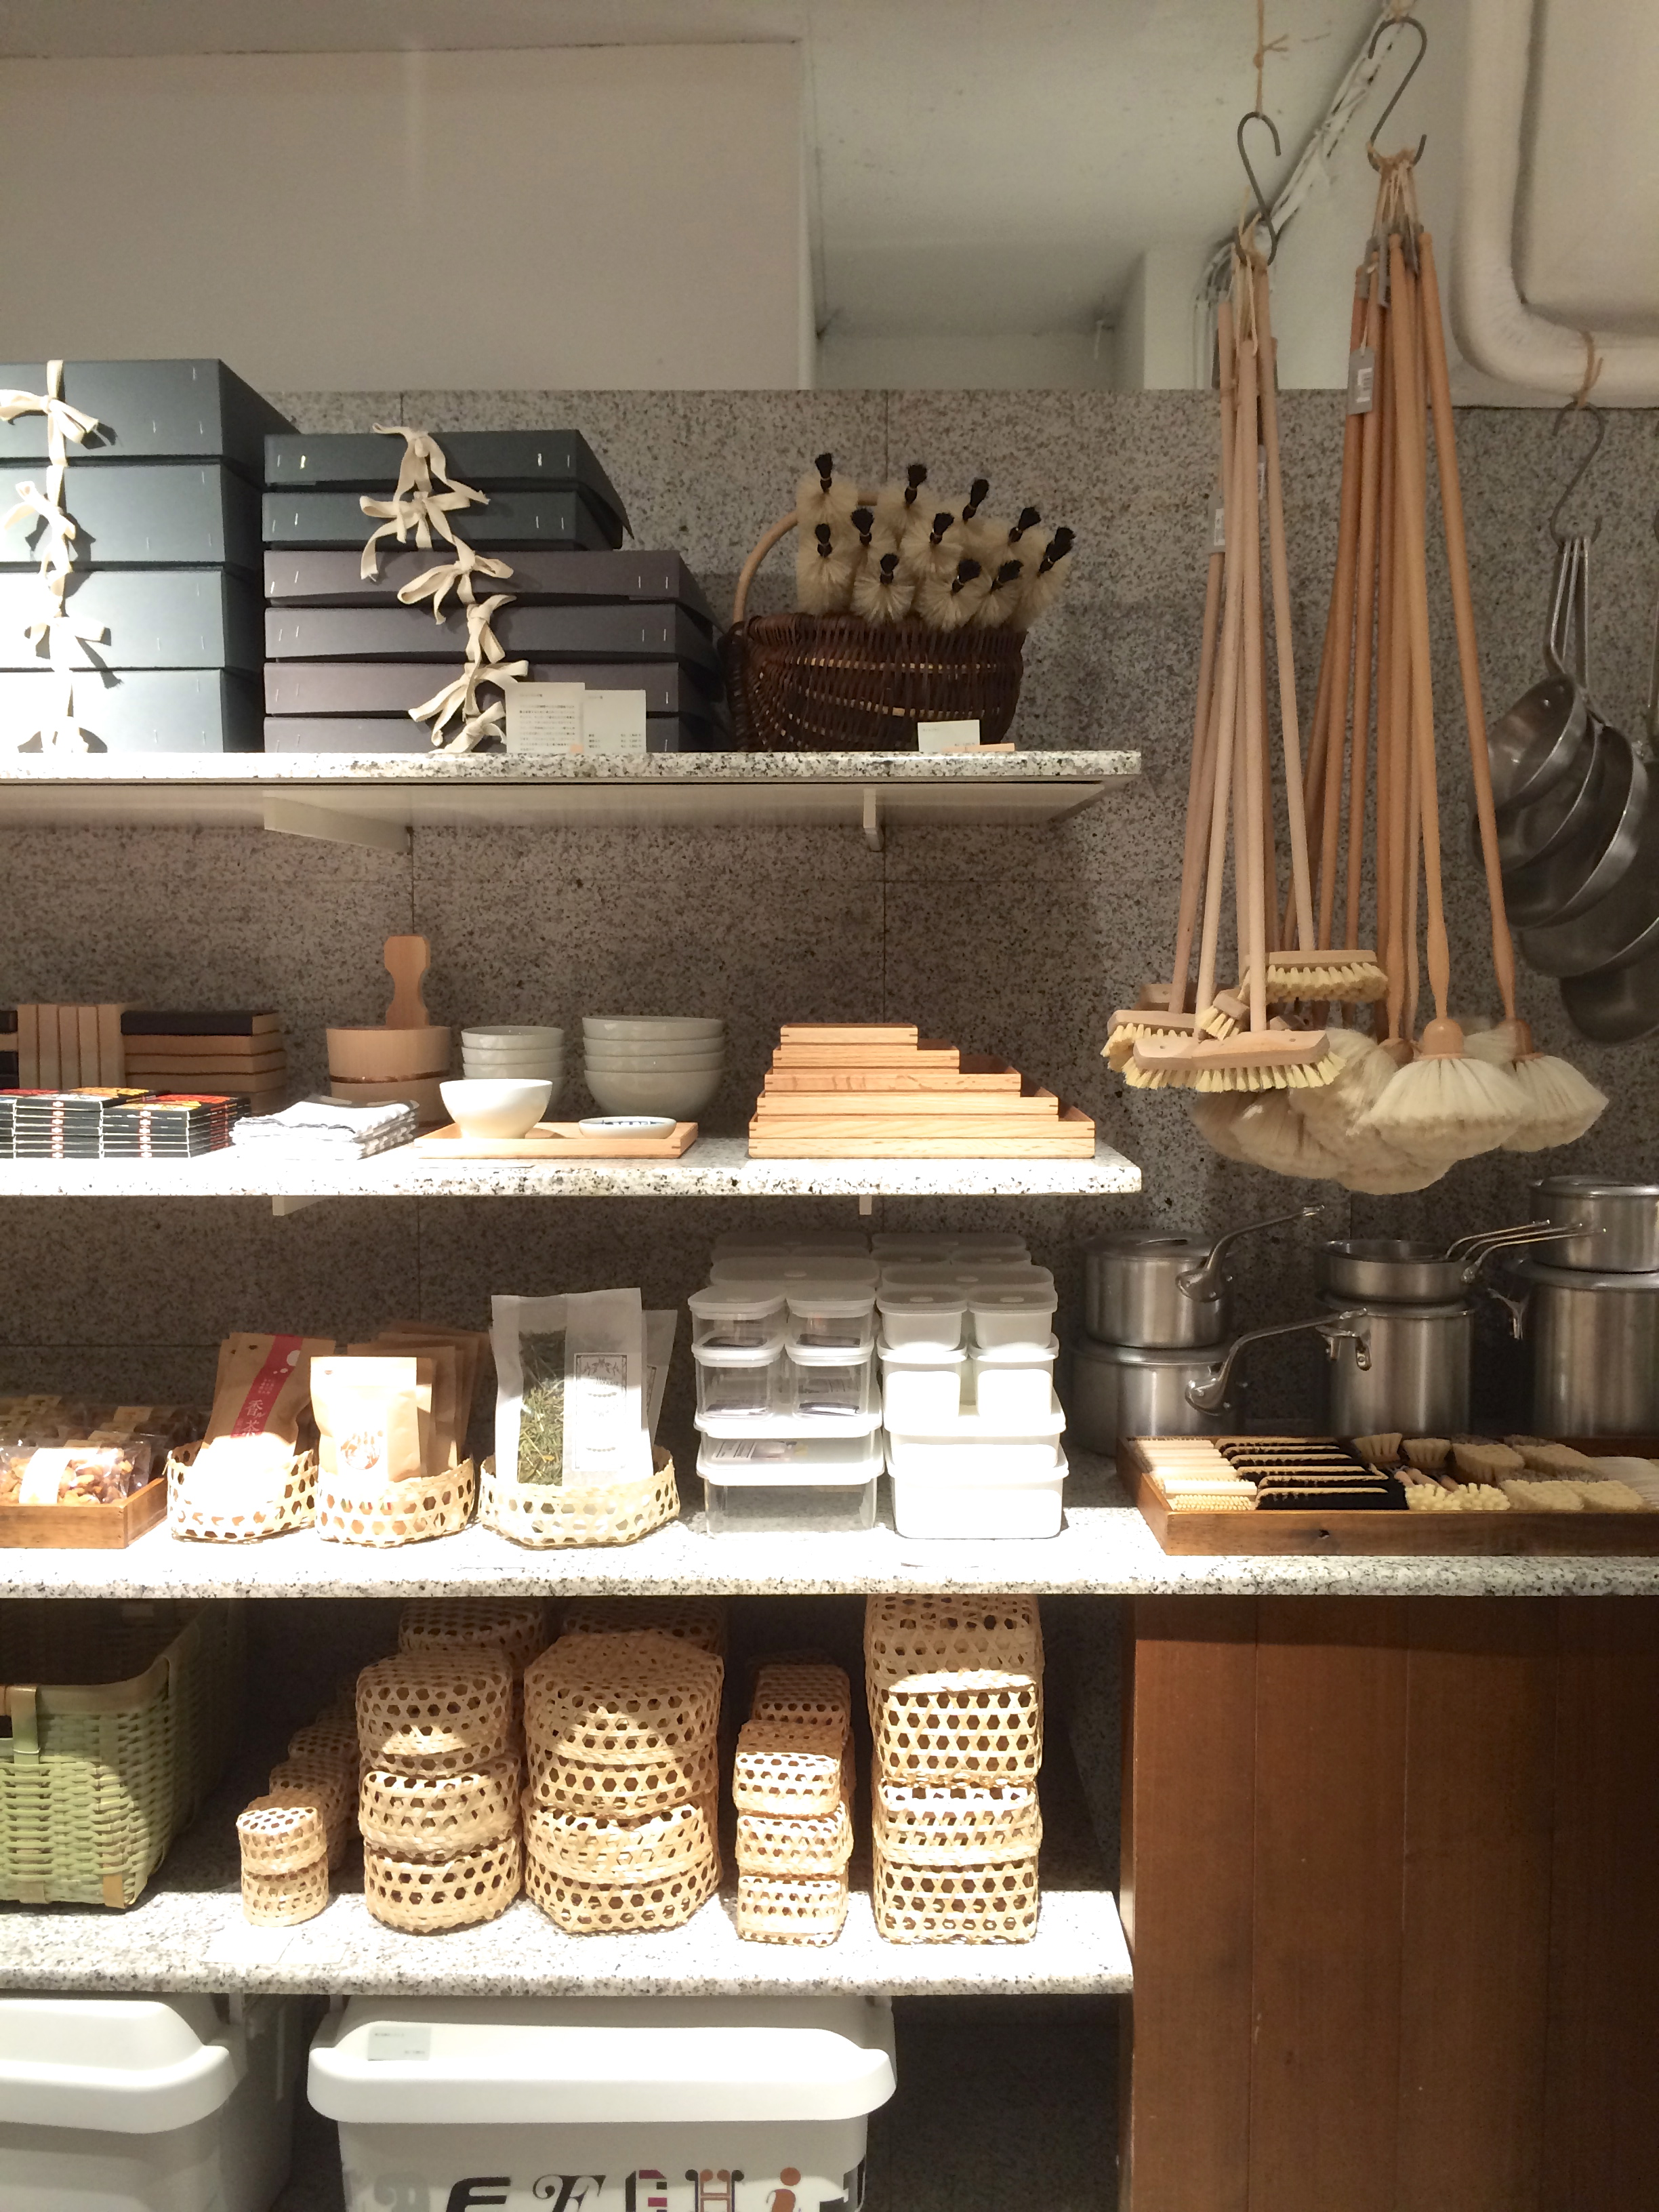 pantry goods and orderly containers.